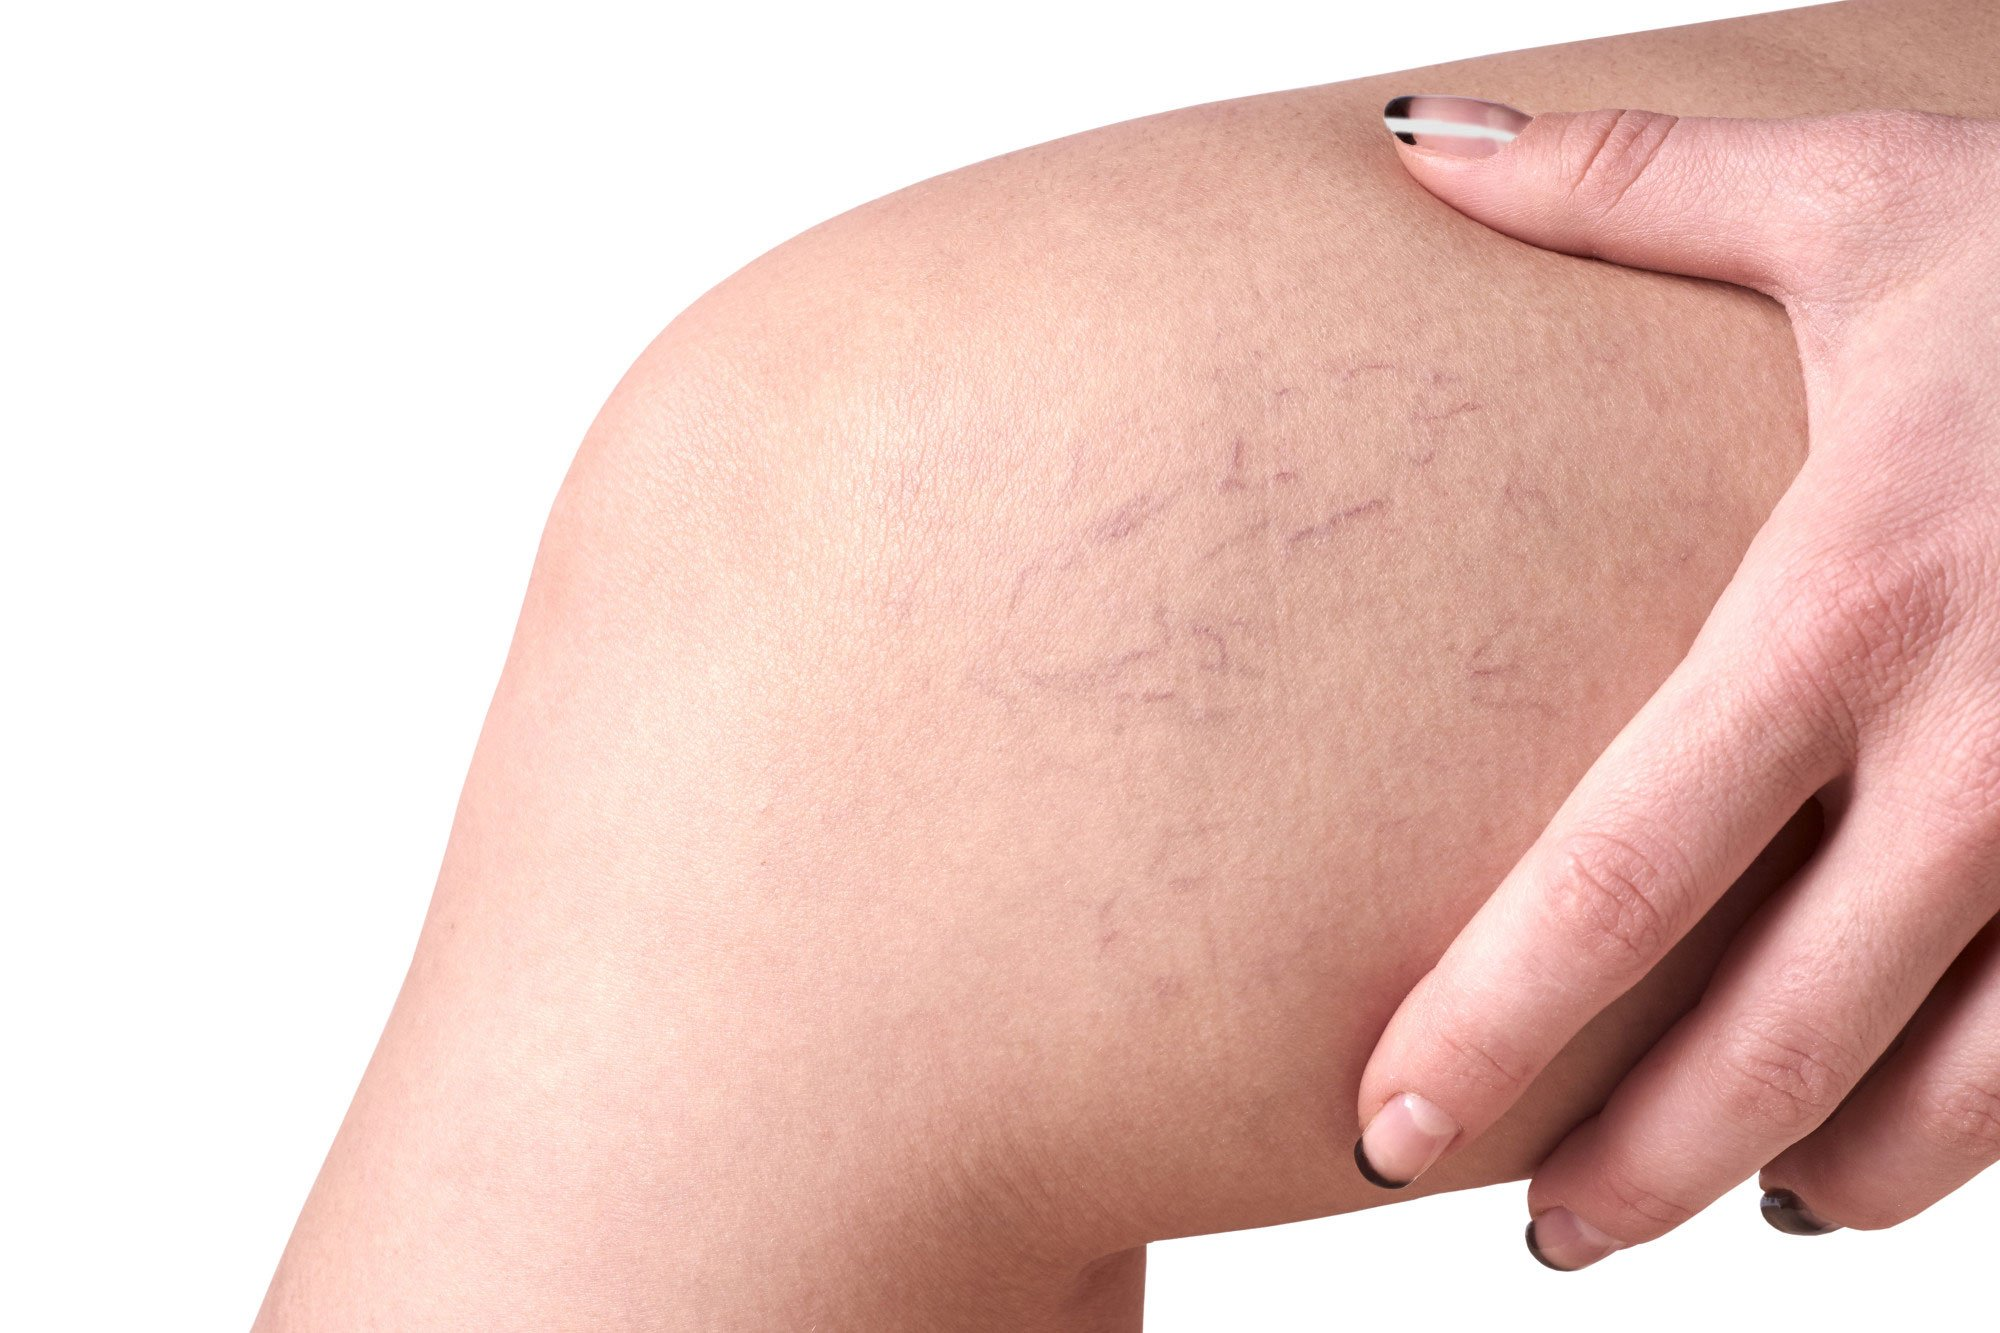 Risks of Untreated Spider Veins